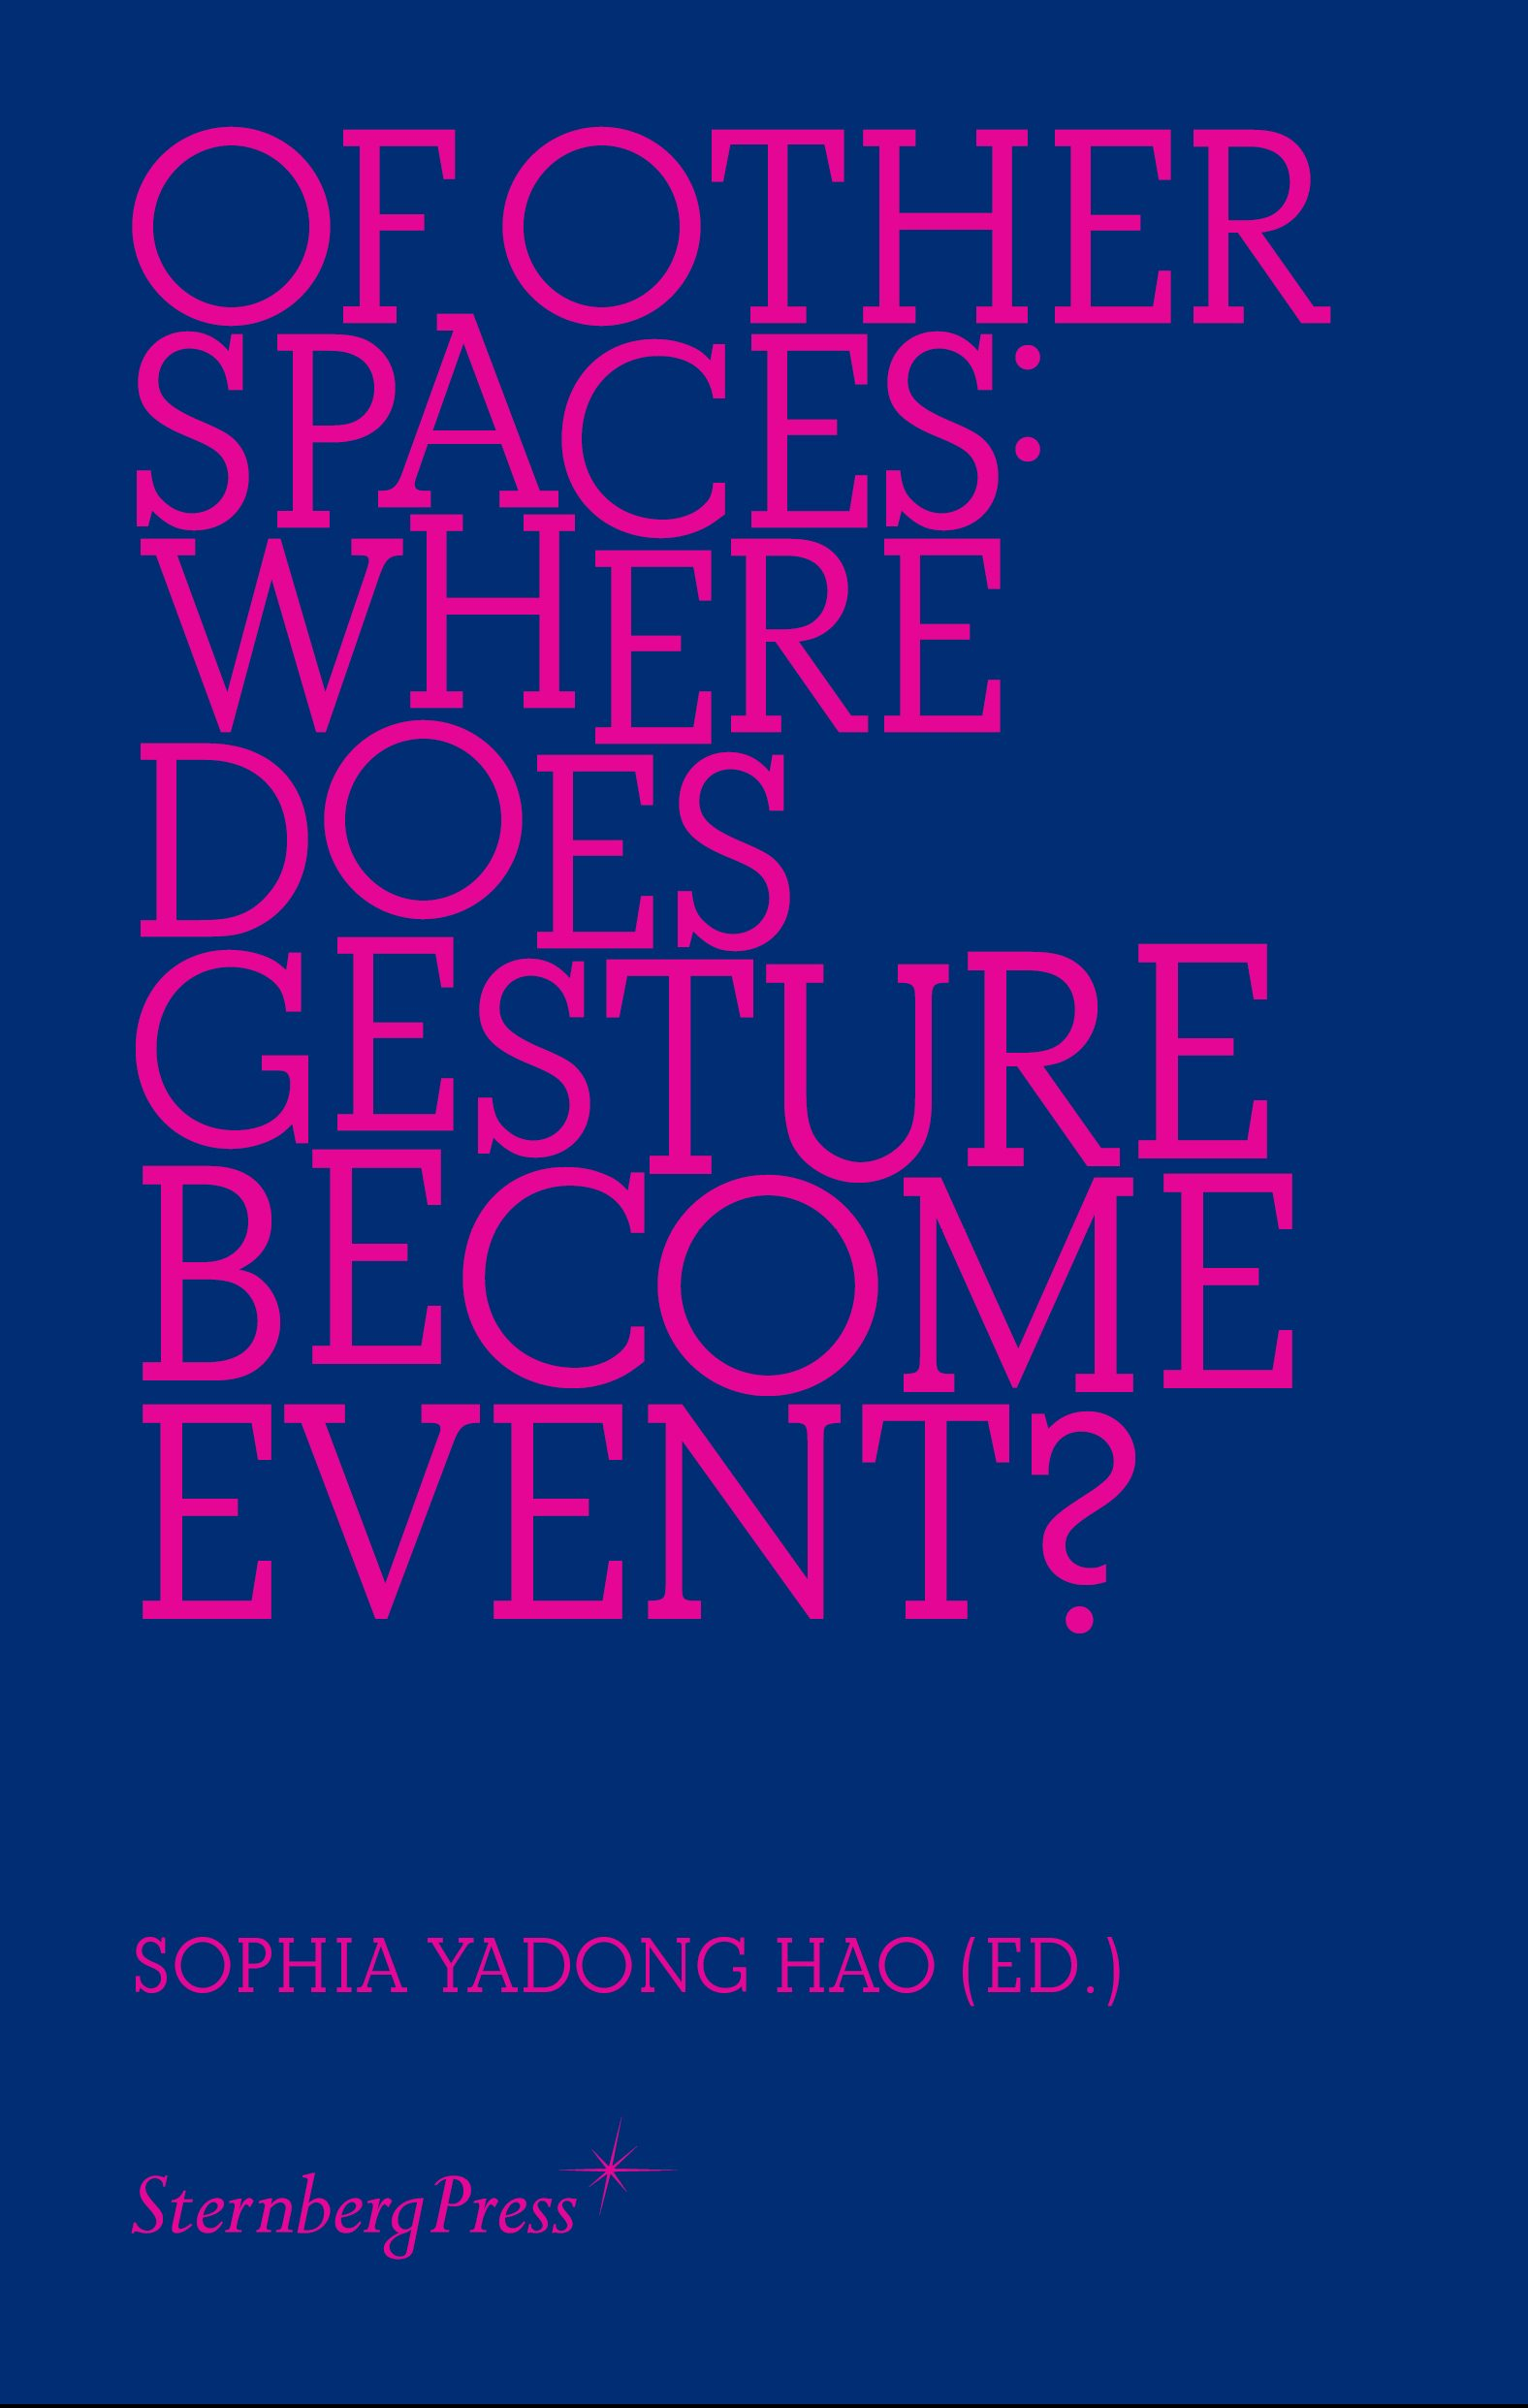 Book cover, Of Other Spaces: Where Does Gesture Become Event? edited by Sophia Yadong Hao. The title is in pink on a dark blue background